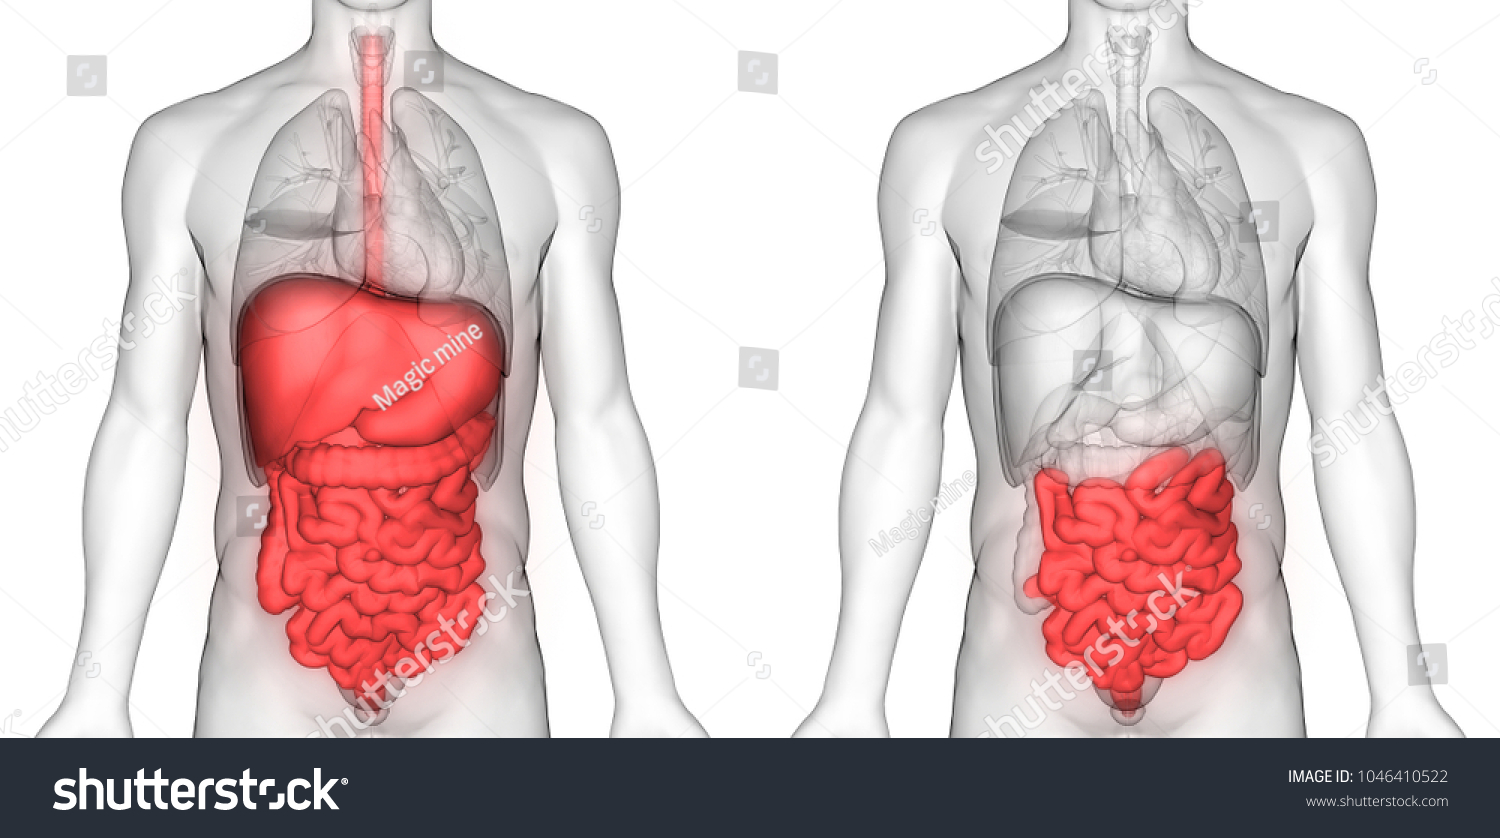 Human Digestive System Small Intestine Anatomy Stock Illustration ...